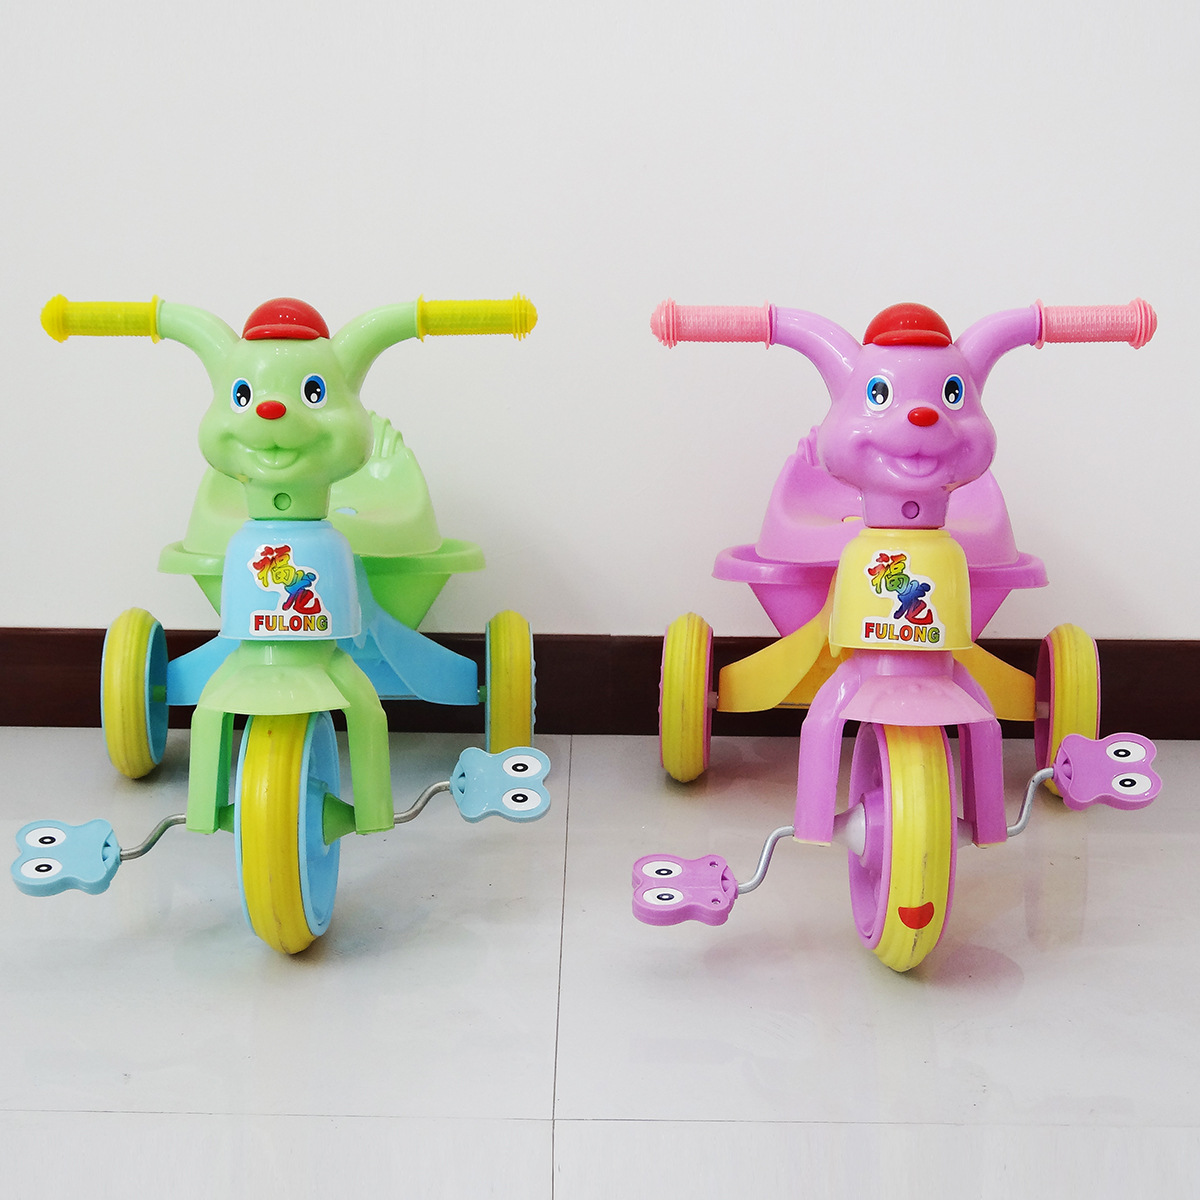 Cartoon Dog Children Tricycle Bicycle Kids Ride on Toys Car Three Wheels Bicycle Baby Walker Car Trike Plastic Riding Toy push along walking toy wooden animal patterns funny kids children baby walker toys duckling dog cat development eduacational toy